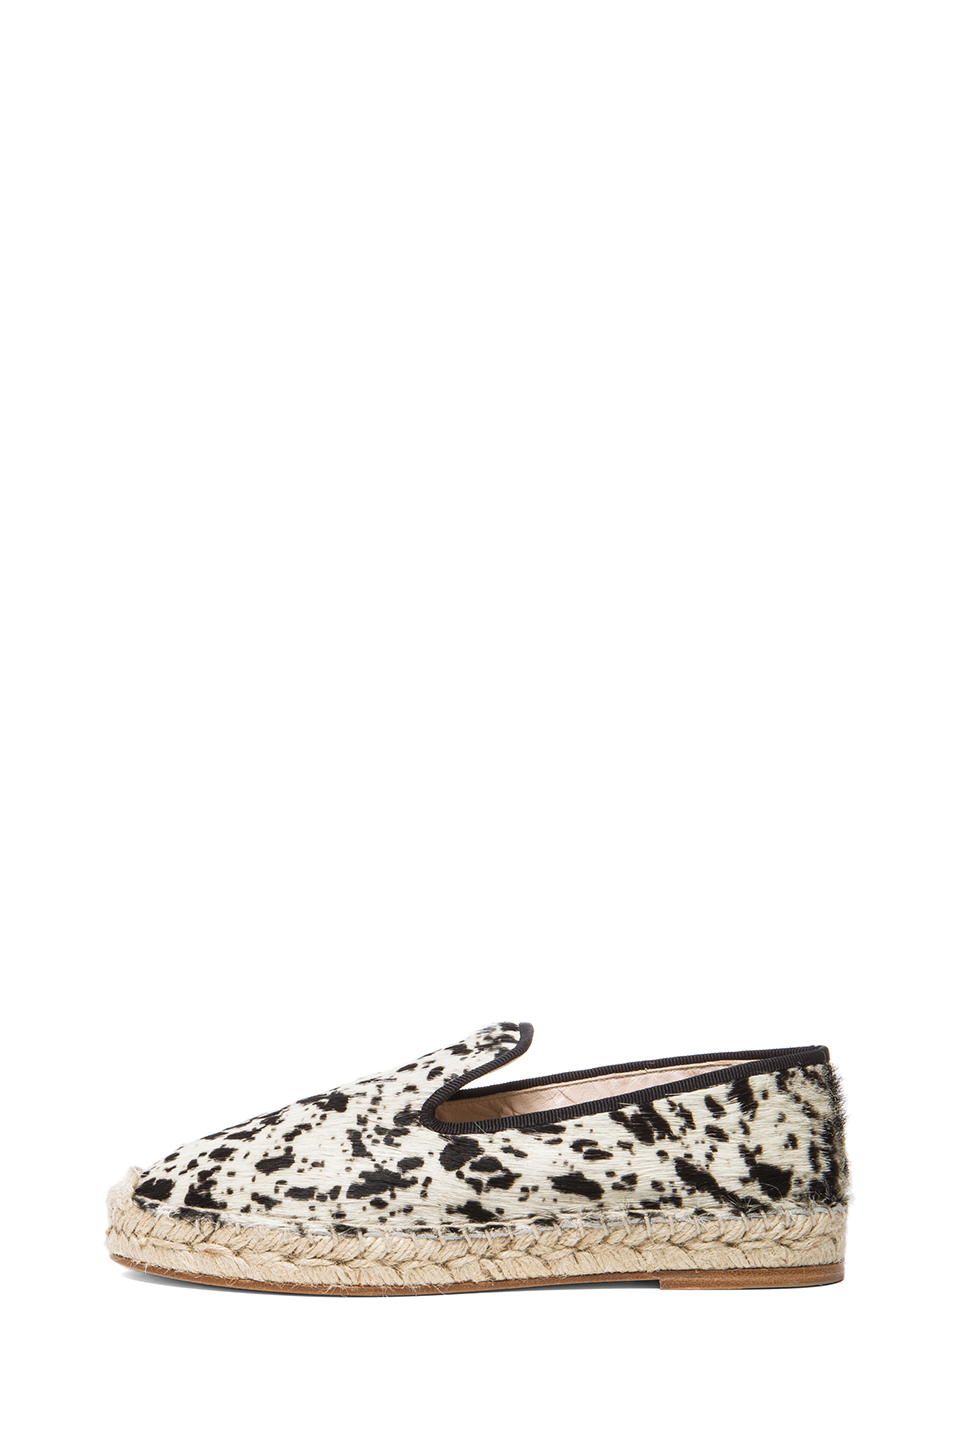 Elyse Walker Los Angeles|Calf Hair Espadrilles in Gacela